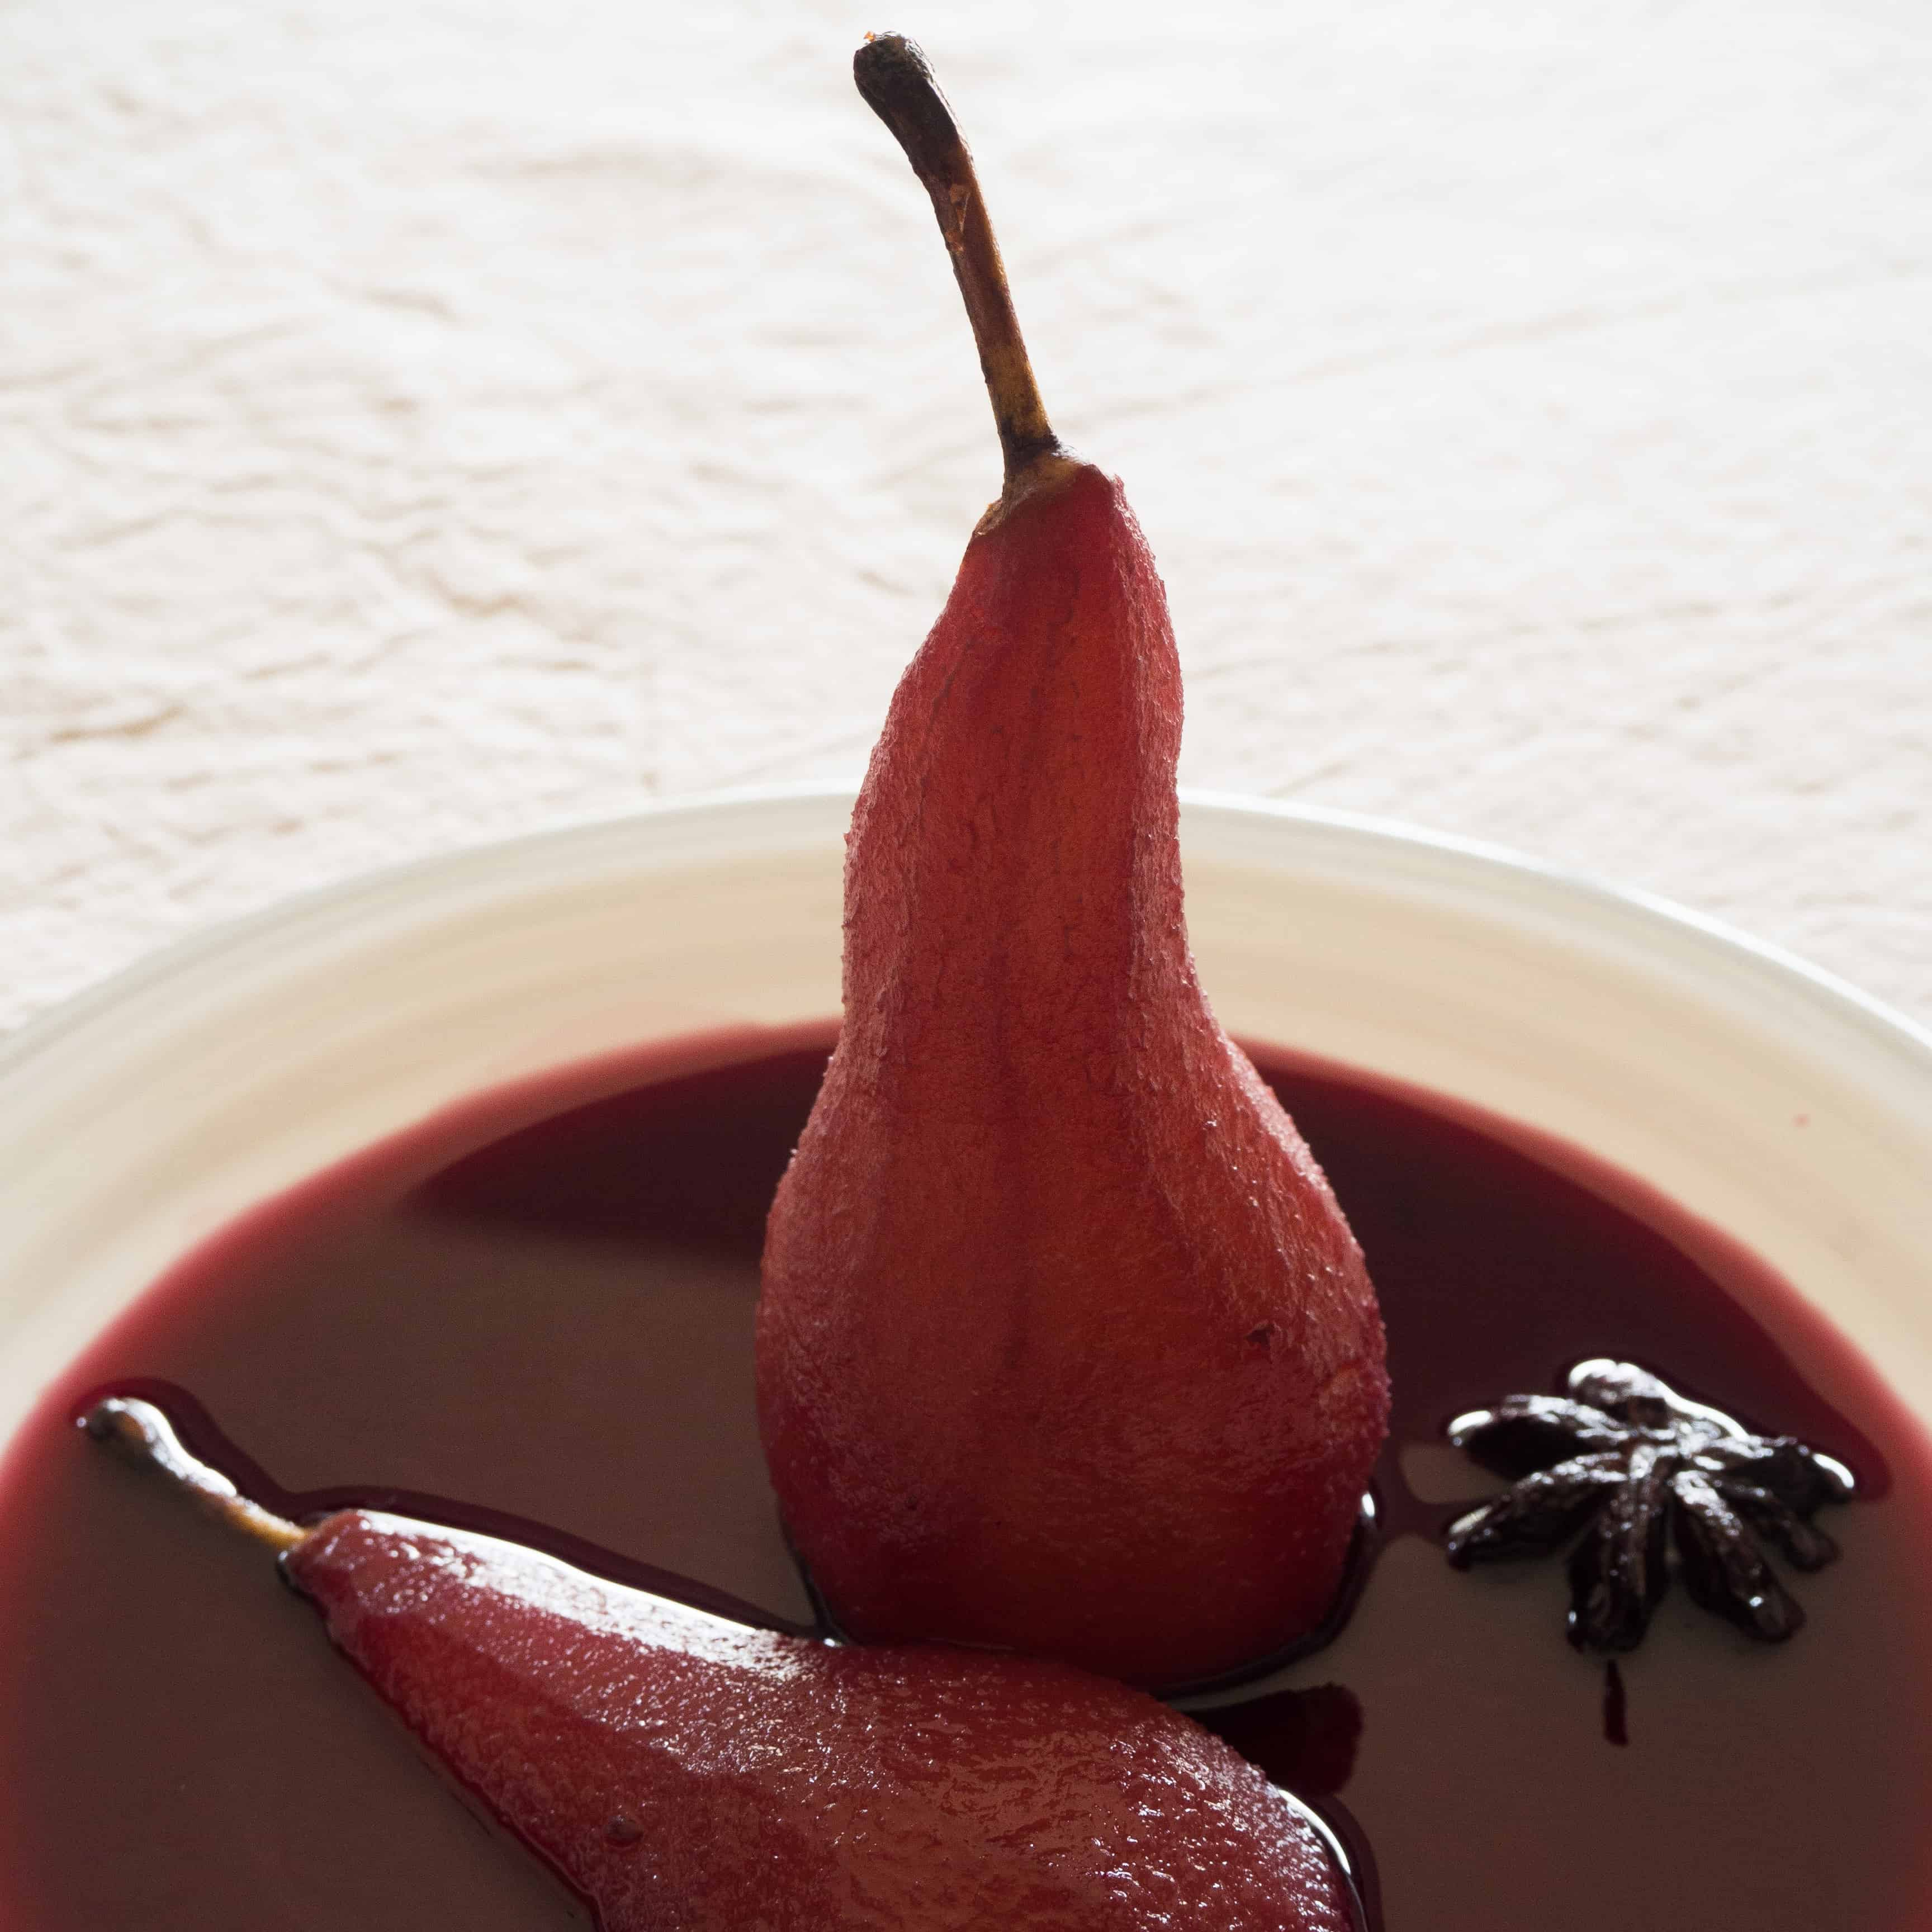 Pears Poached in Spiced Red Wine